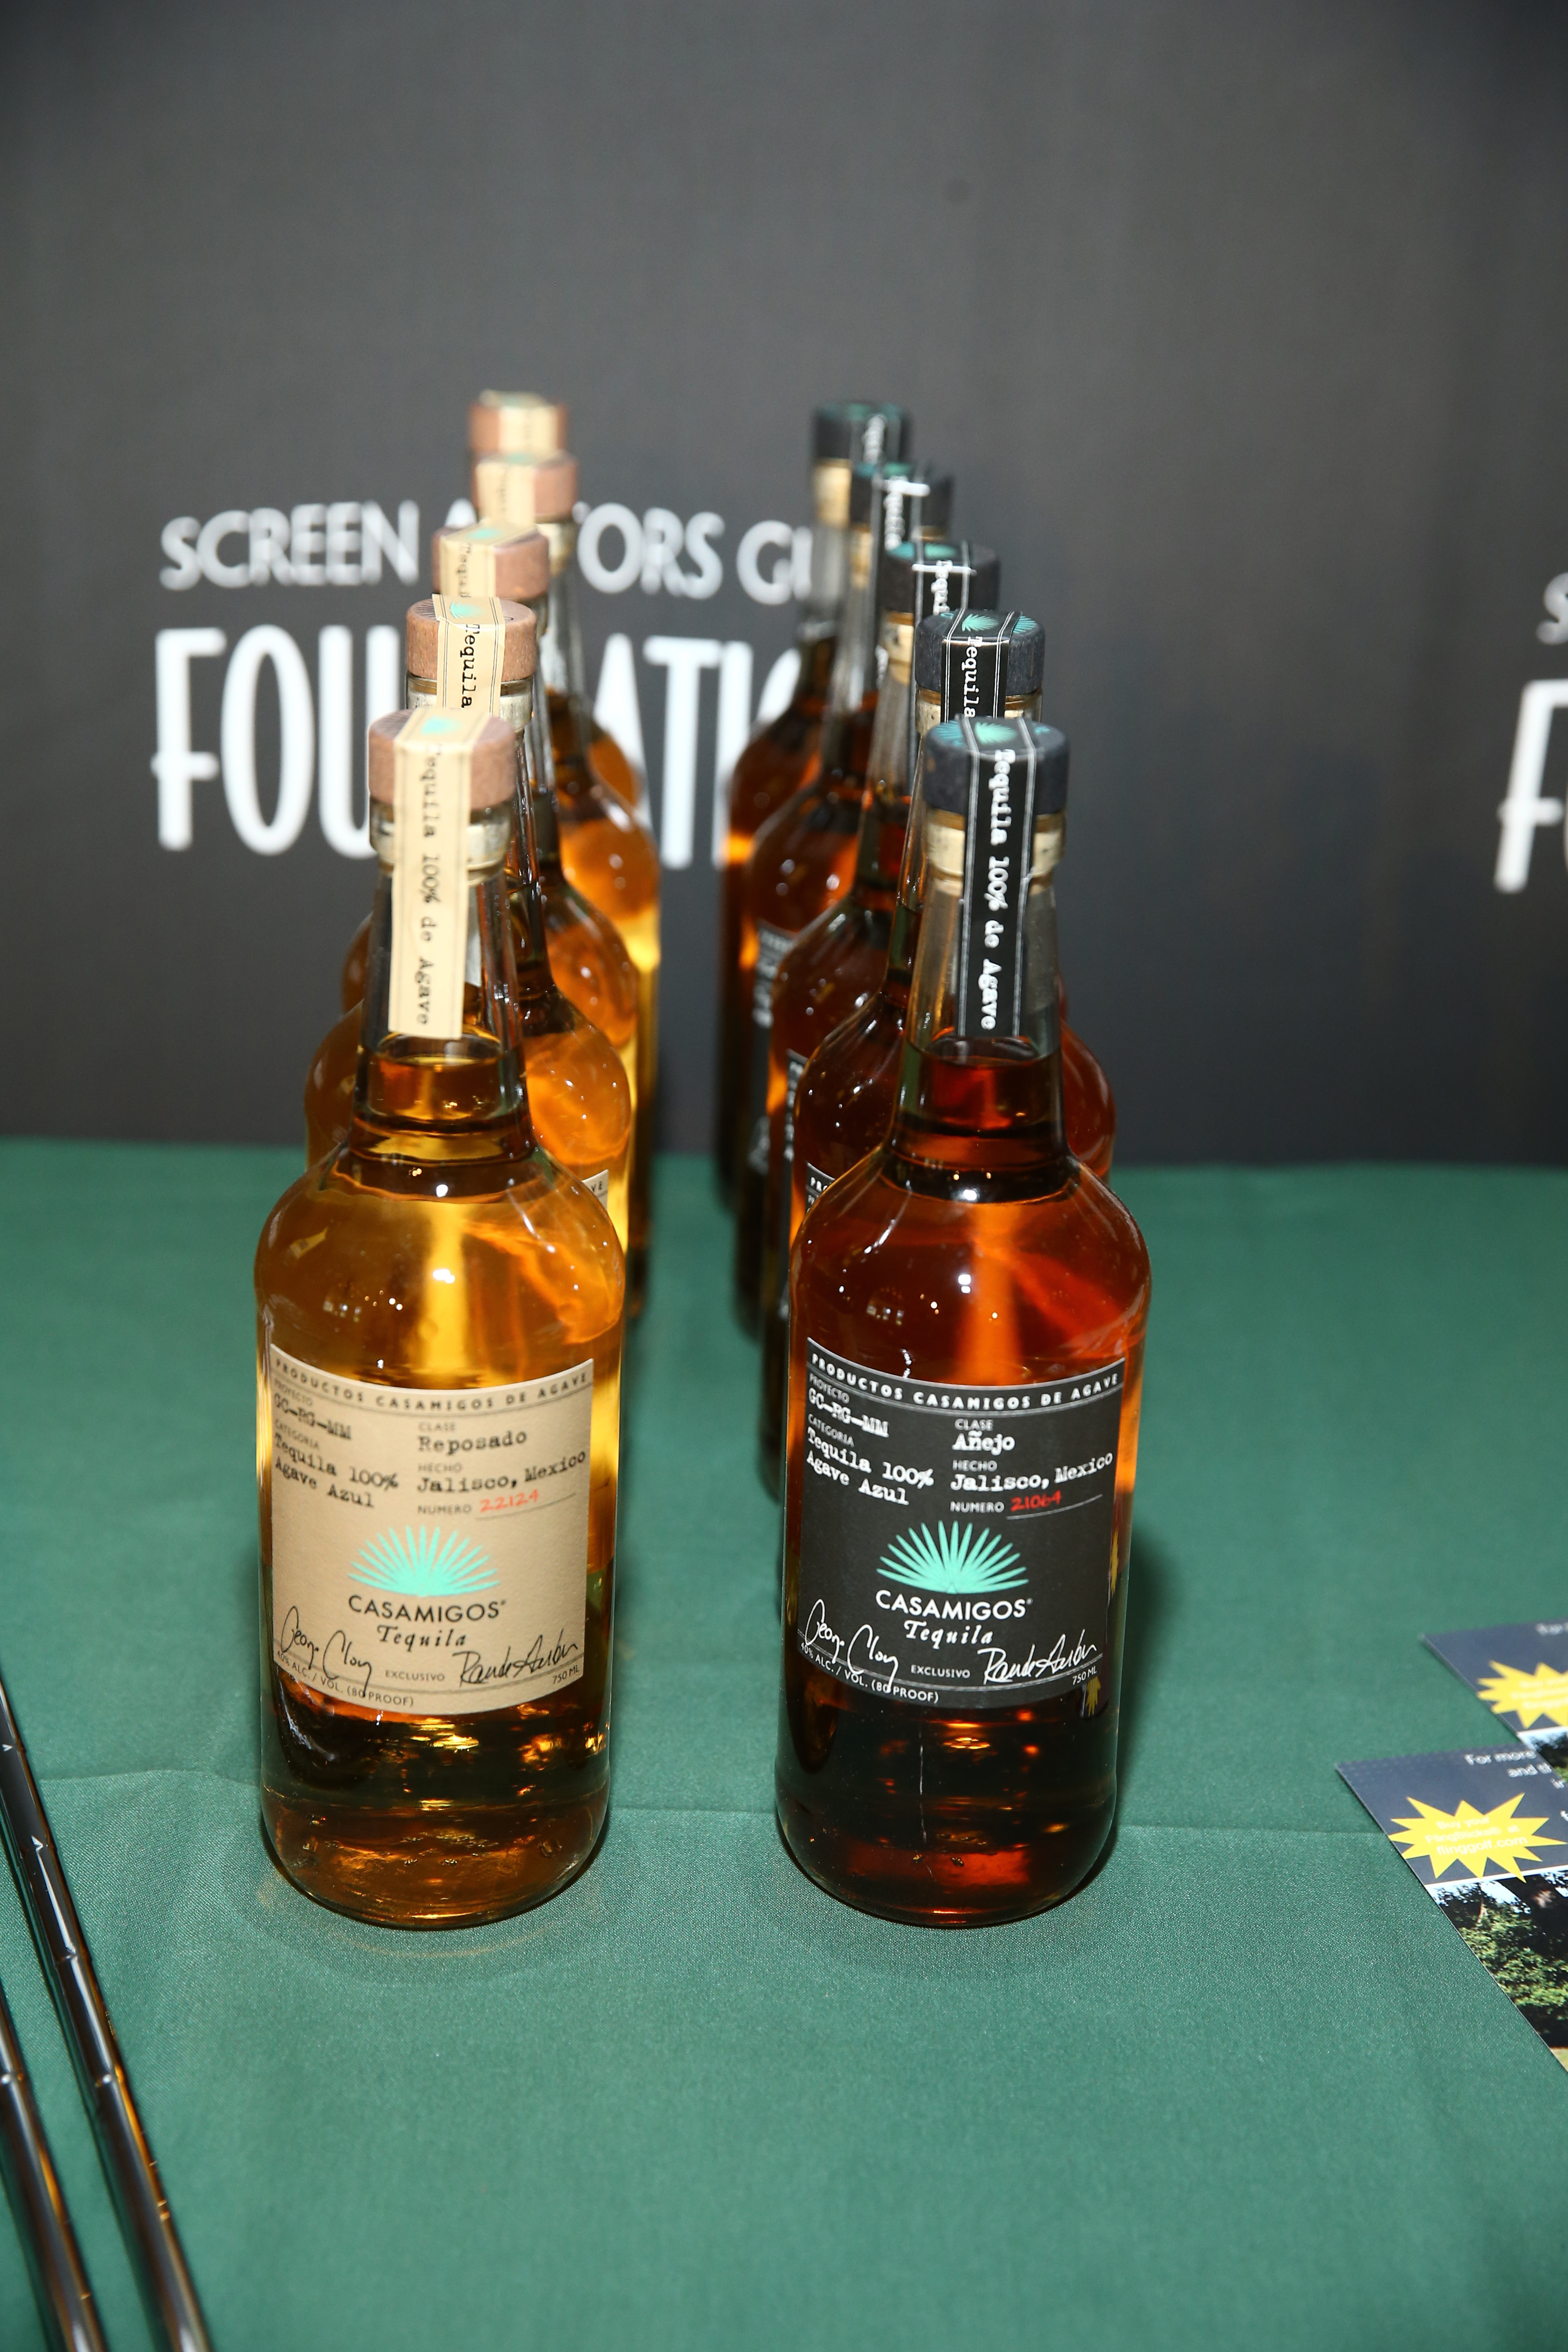 Casamigos Tequila sponsors The Screen Actors Guild Foundation's 6th Annual Los Angeles Golf Classic on June 8, 2015 in Burbank, California. (Photo by Mark Davis/Getty Images for The Screen Actors Guild Foundation)